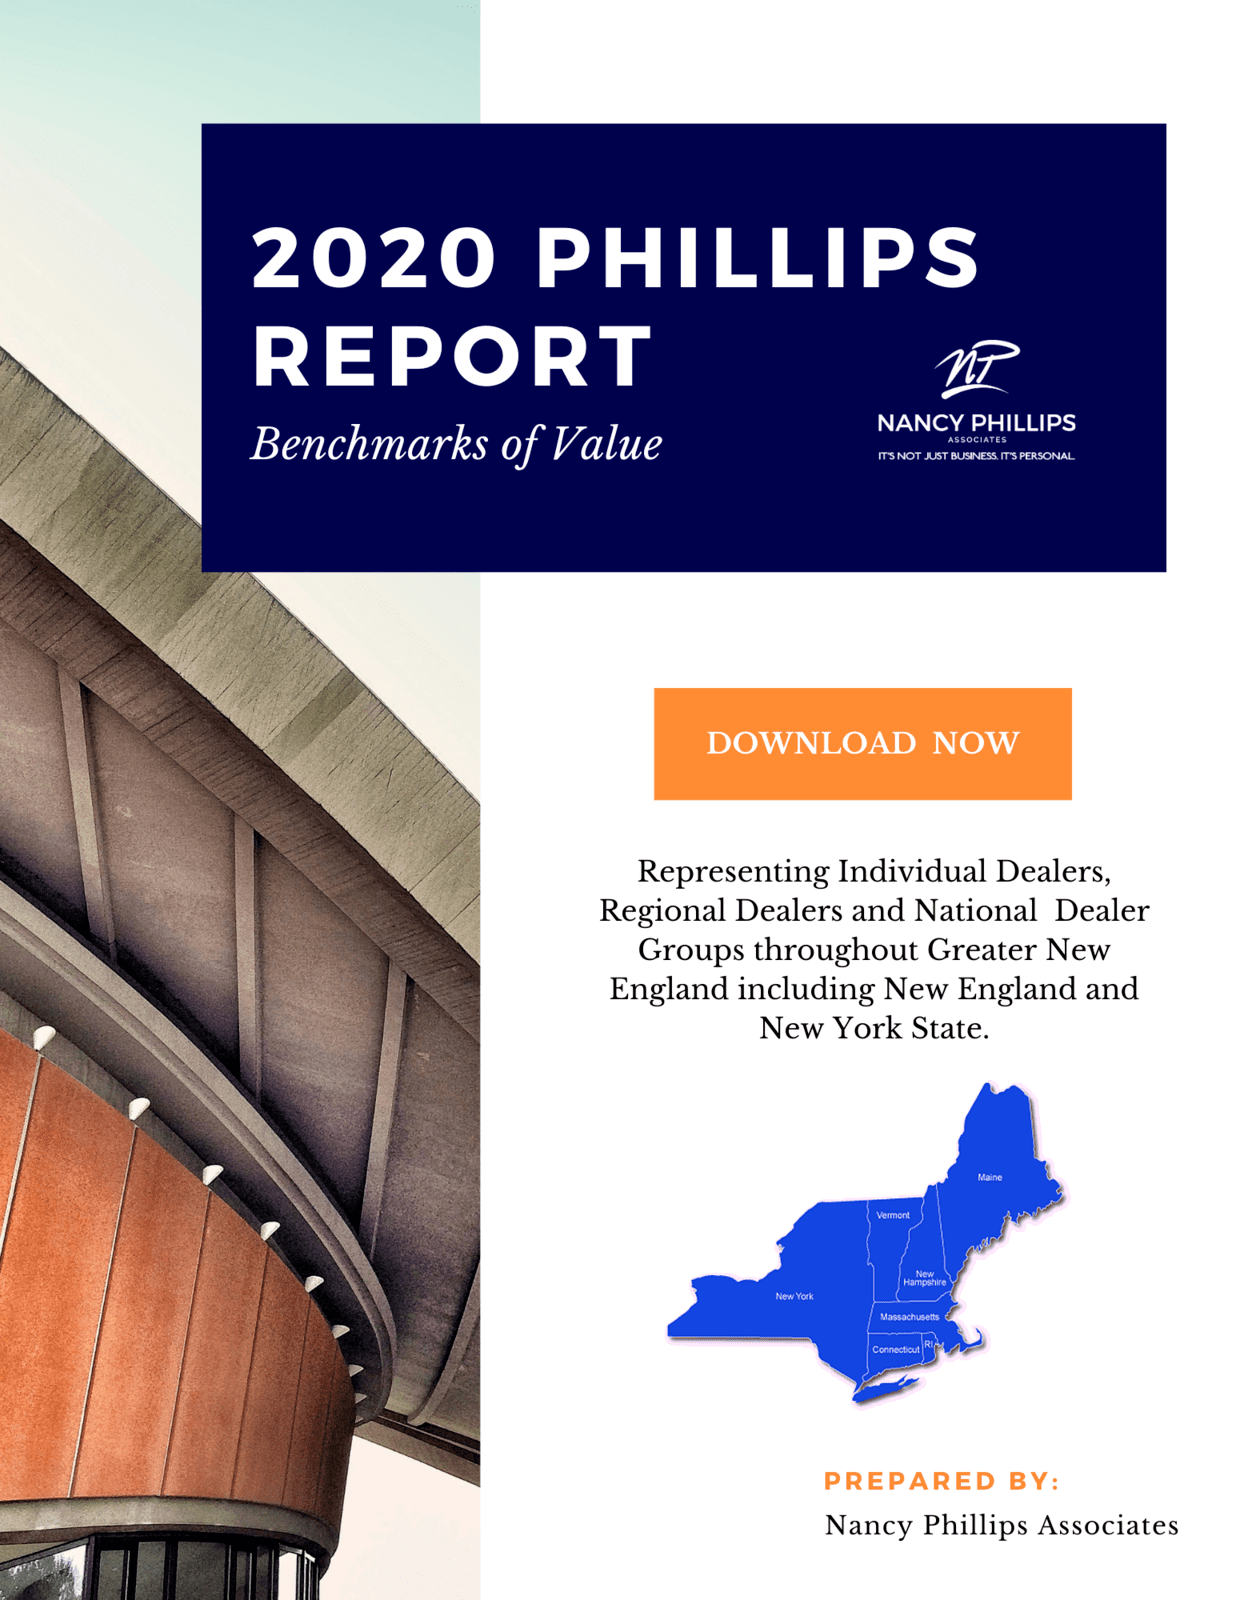 The Phillips Report - 2020 Dealership Values in Greater New England